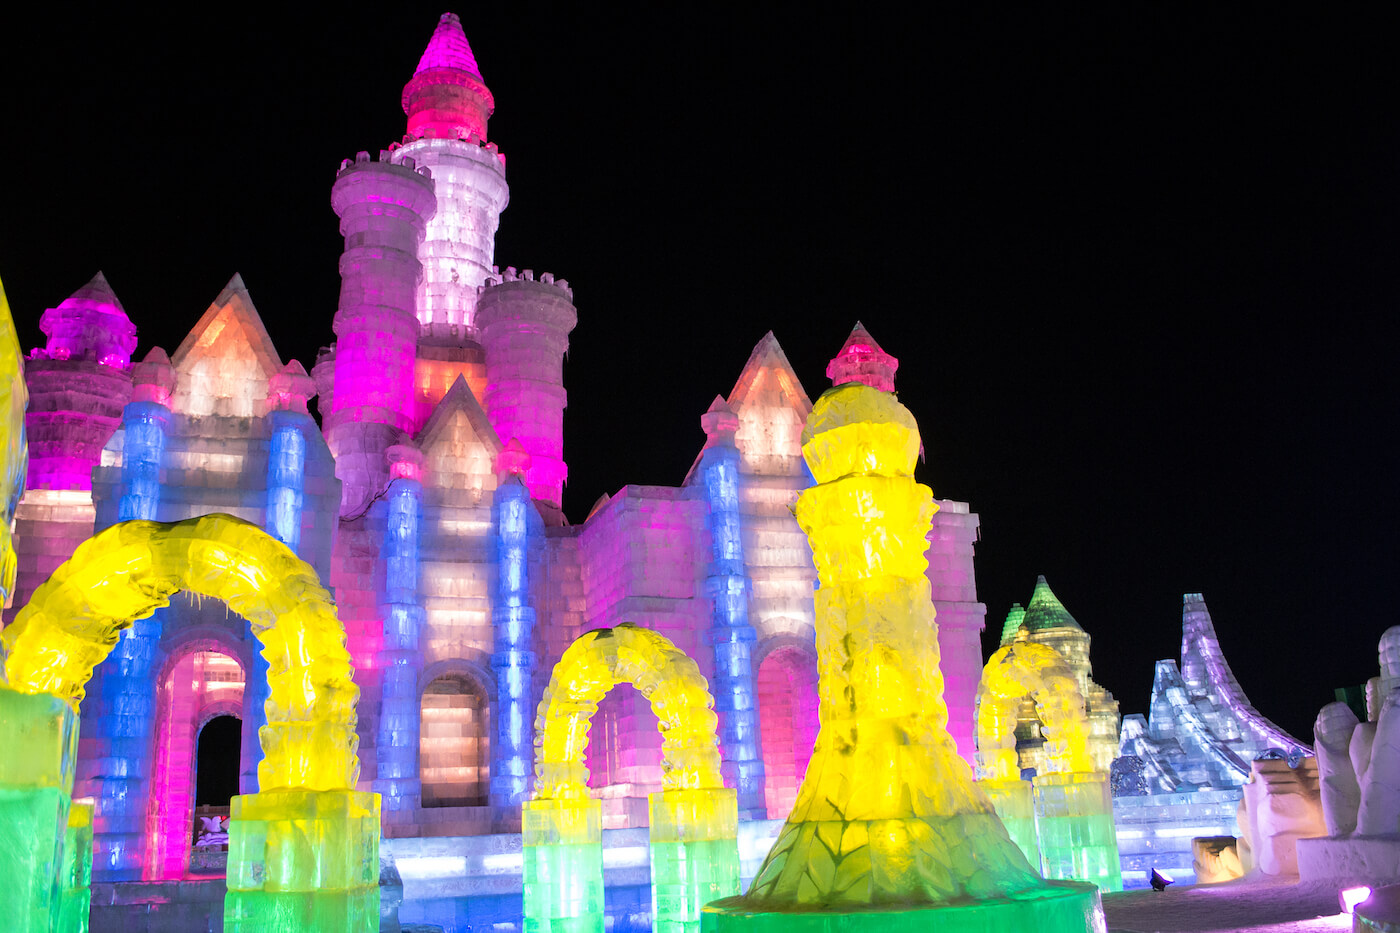 Ice castle at Ice and Snow Festival in Harbin, China